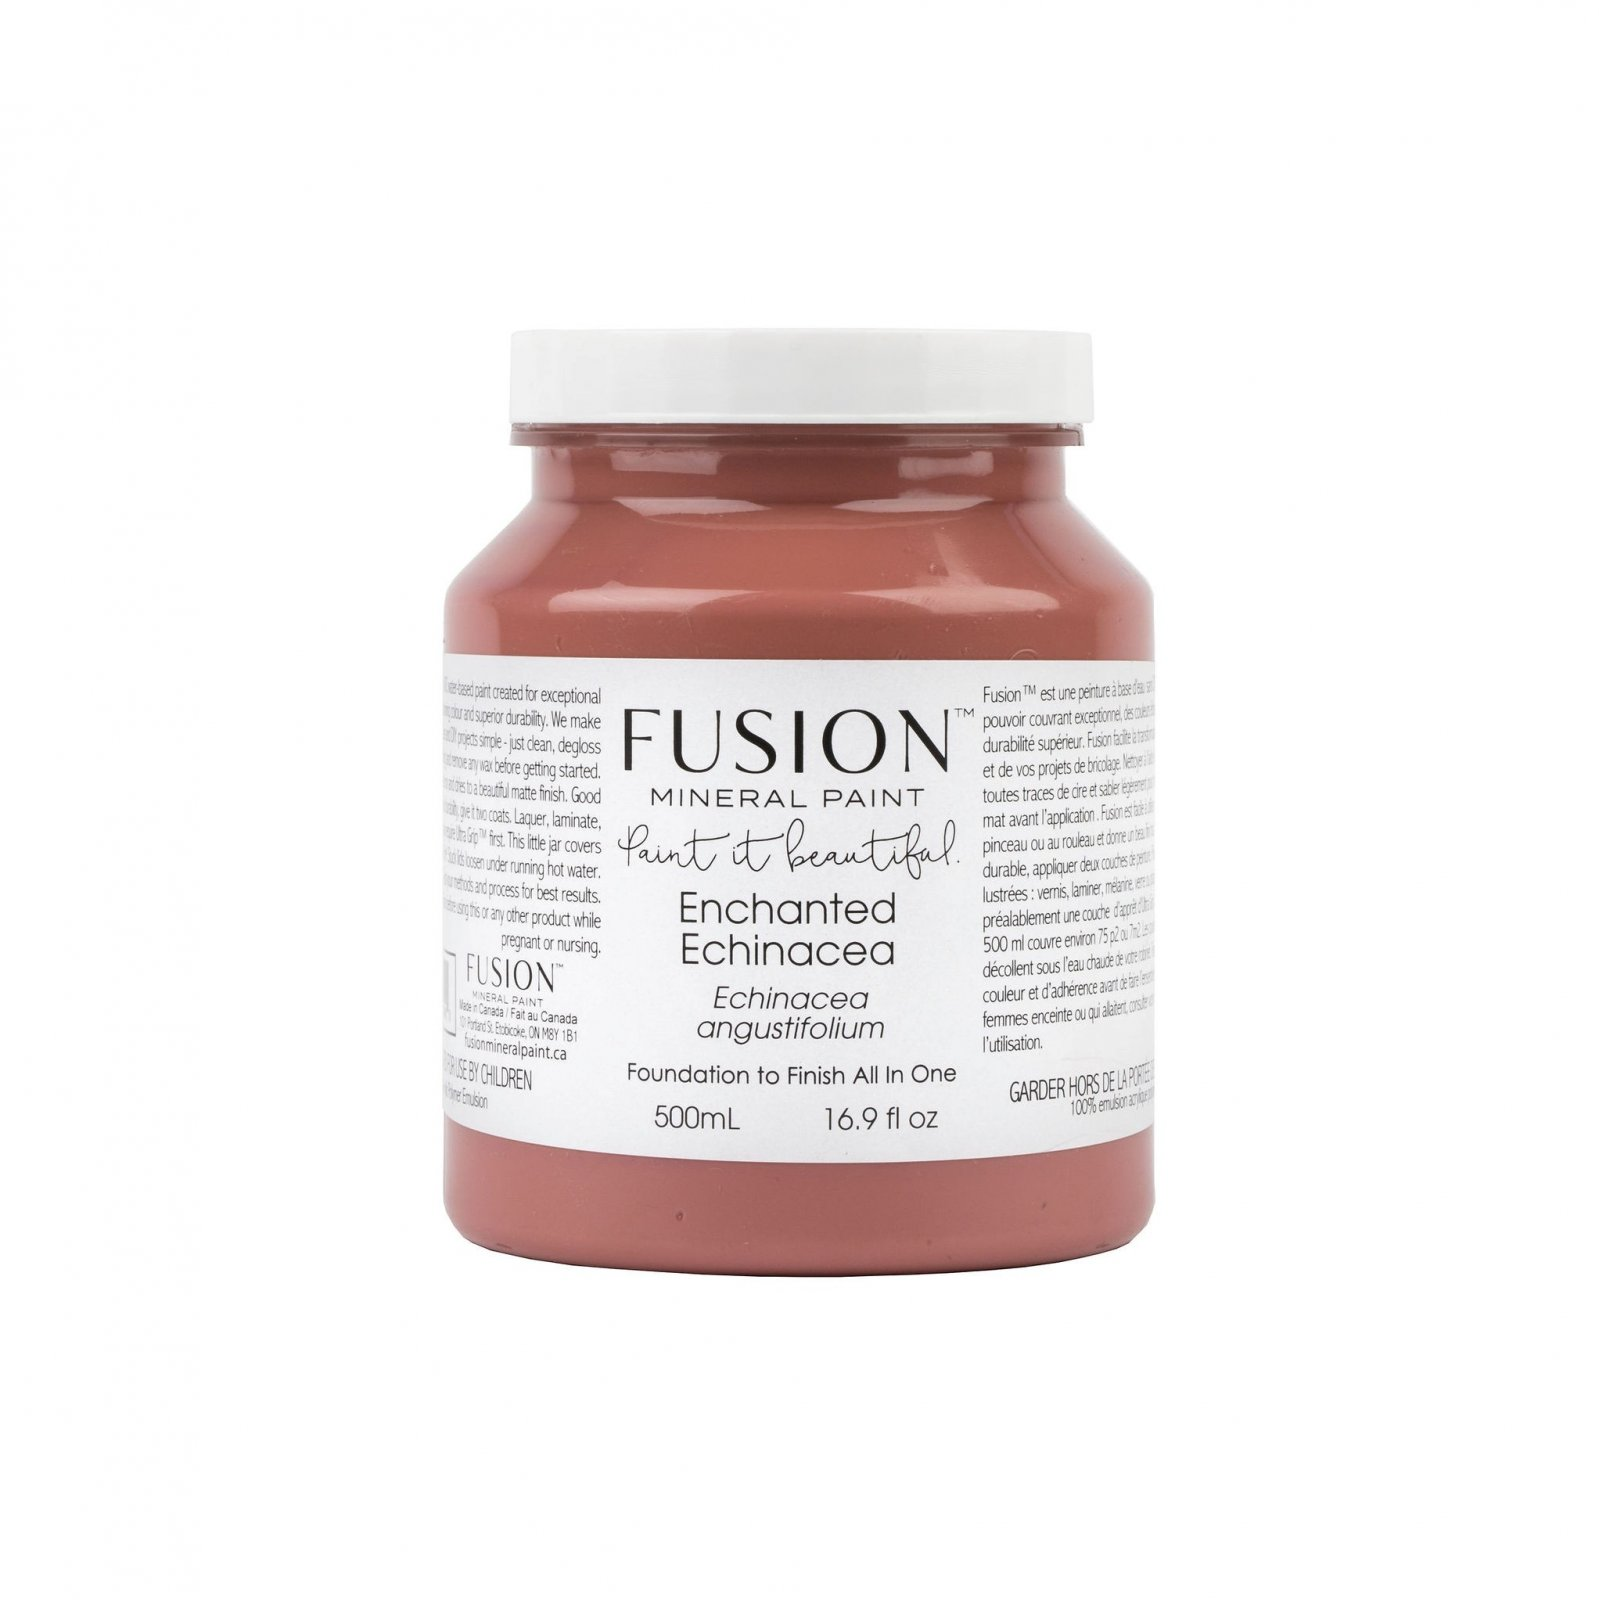 Enchanted Echinacea Pint Fusion Mineral Paint